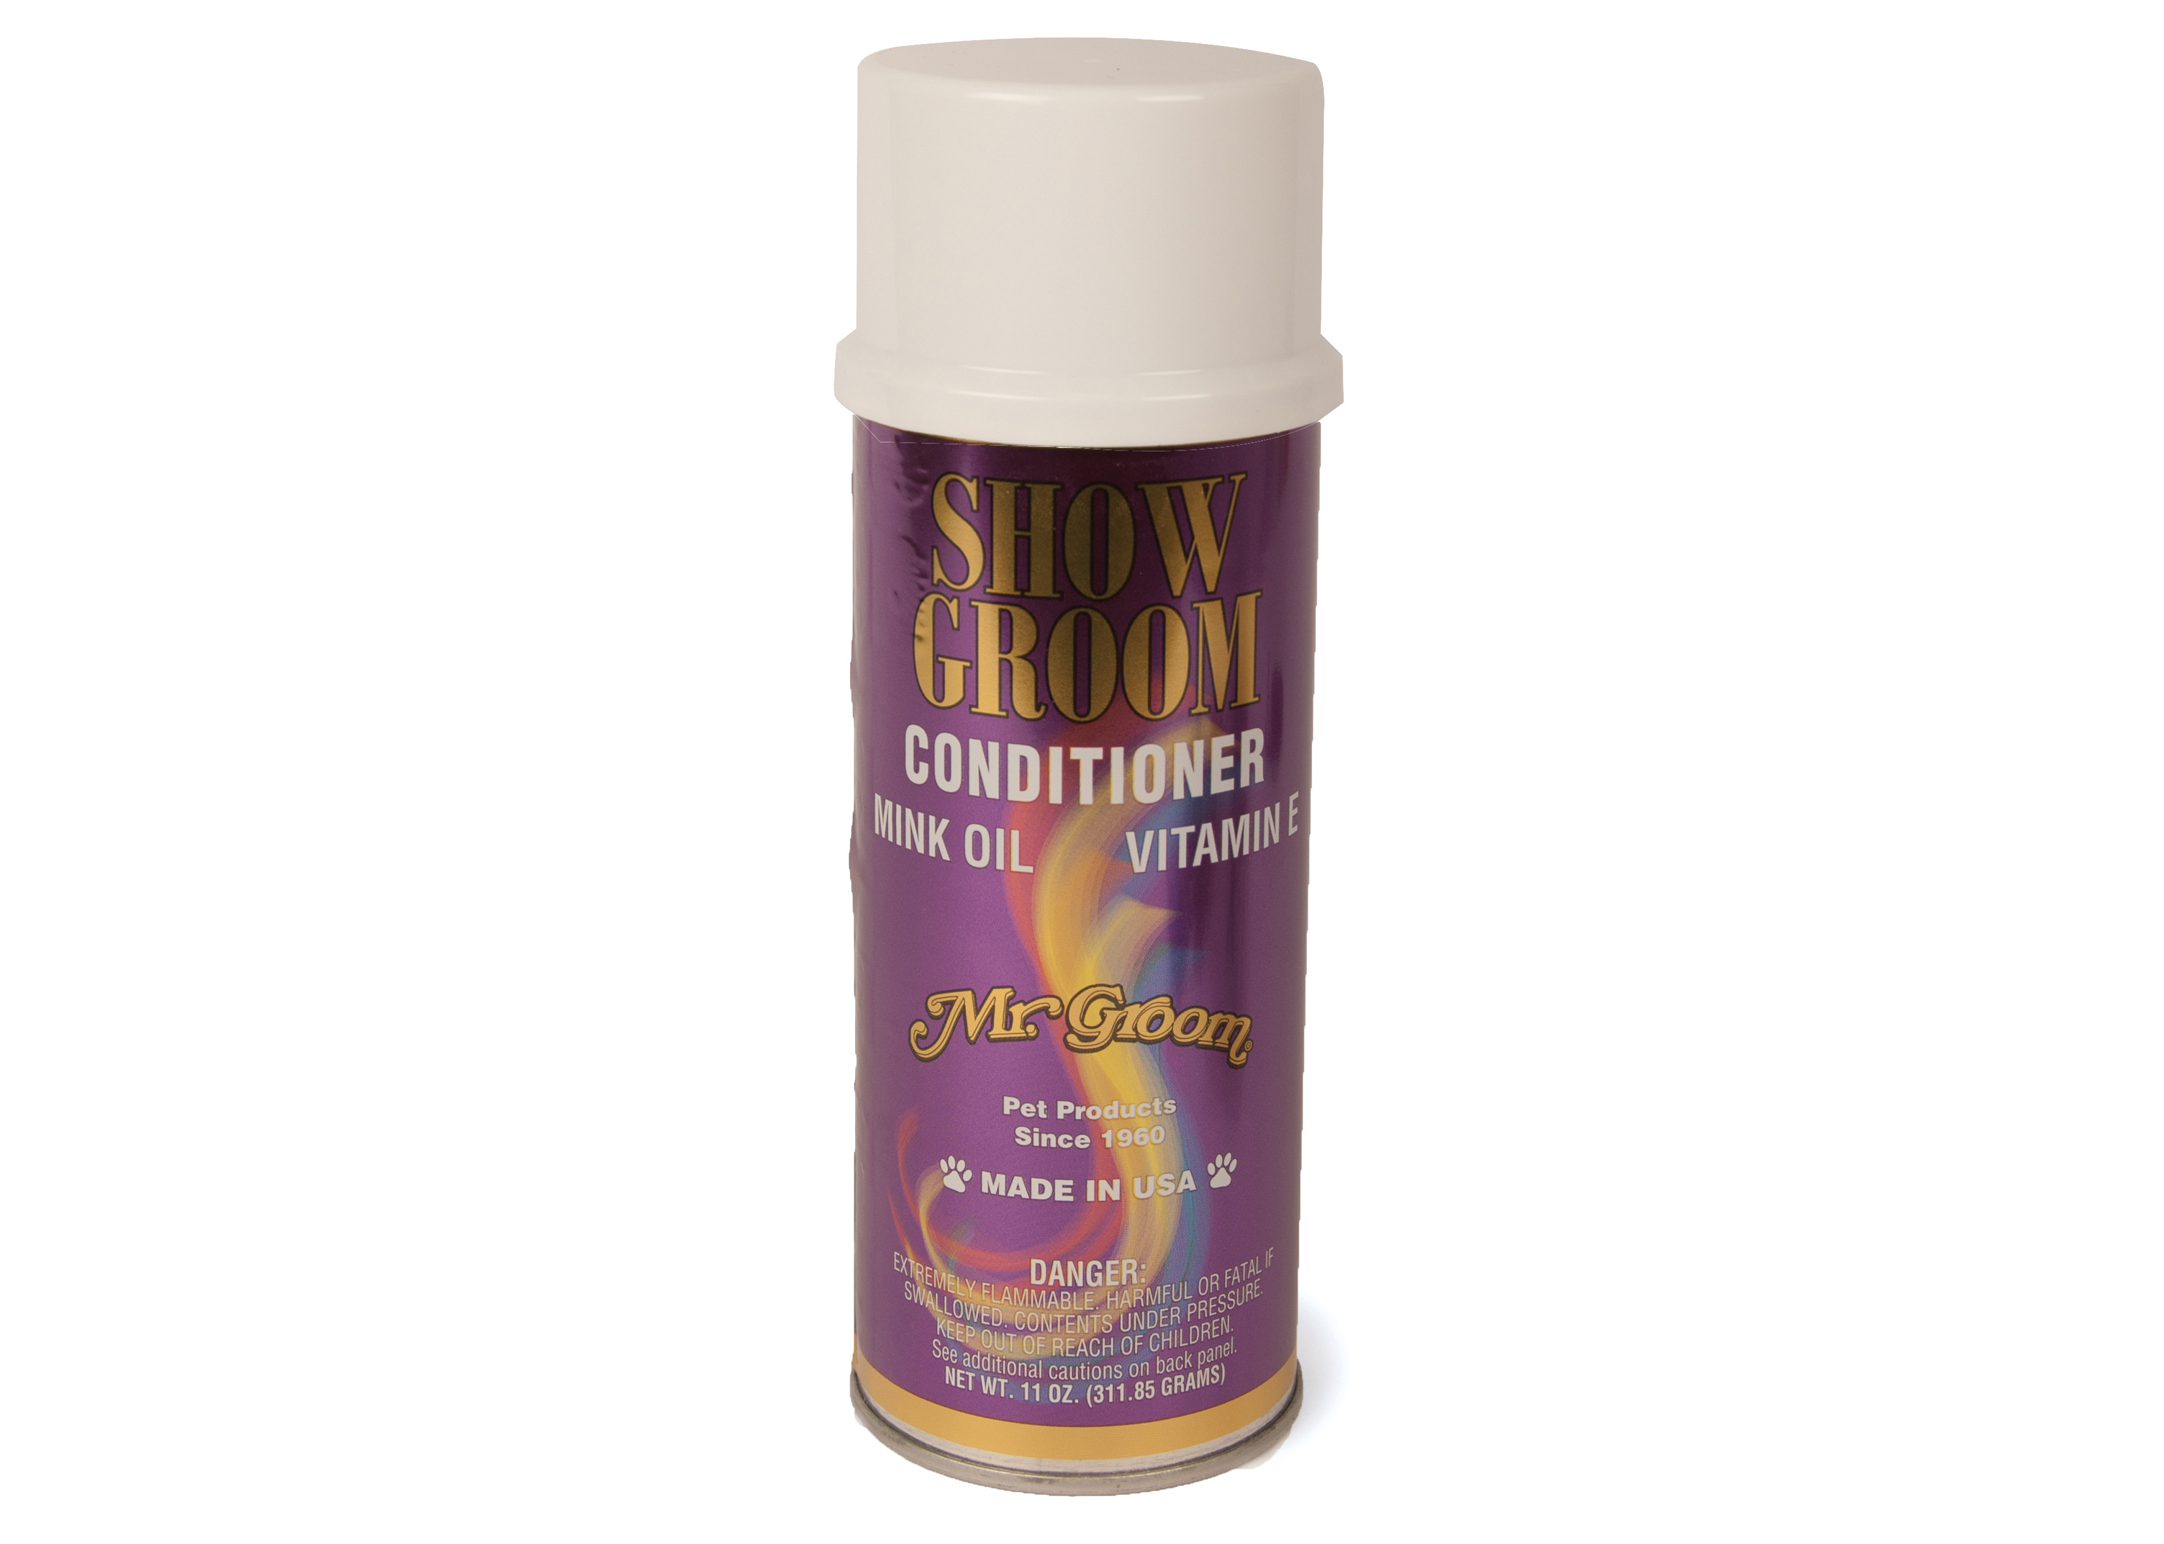 Mr. Groom Show Groom Conditioner 311 gr Spray Conditionneur